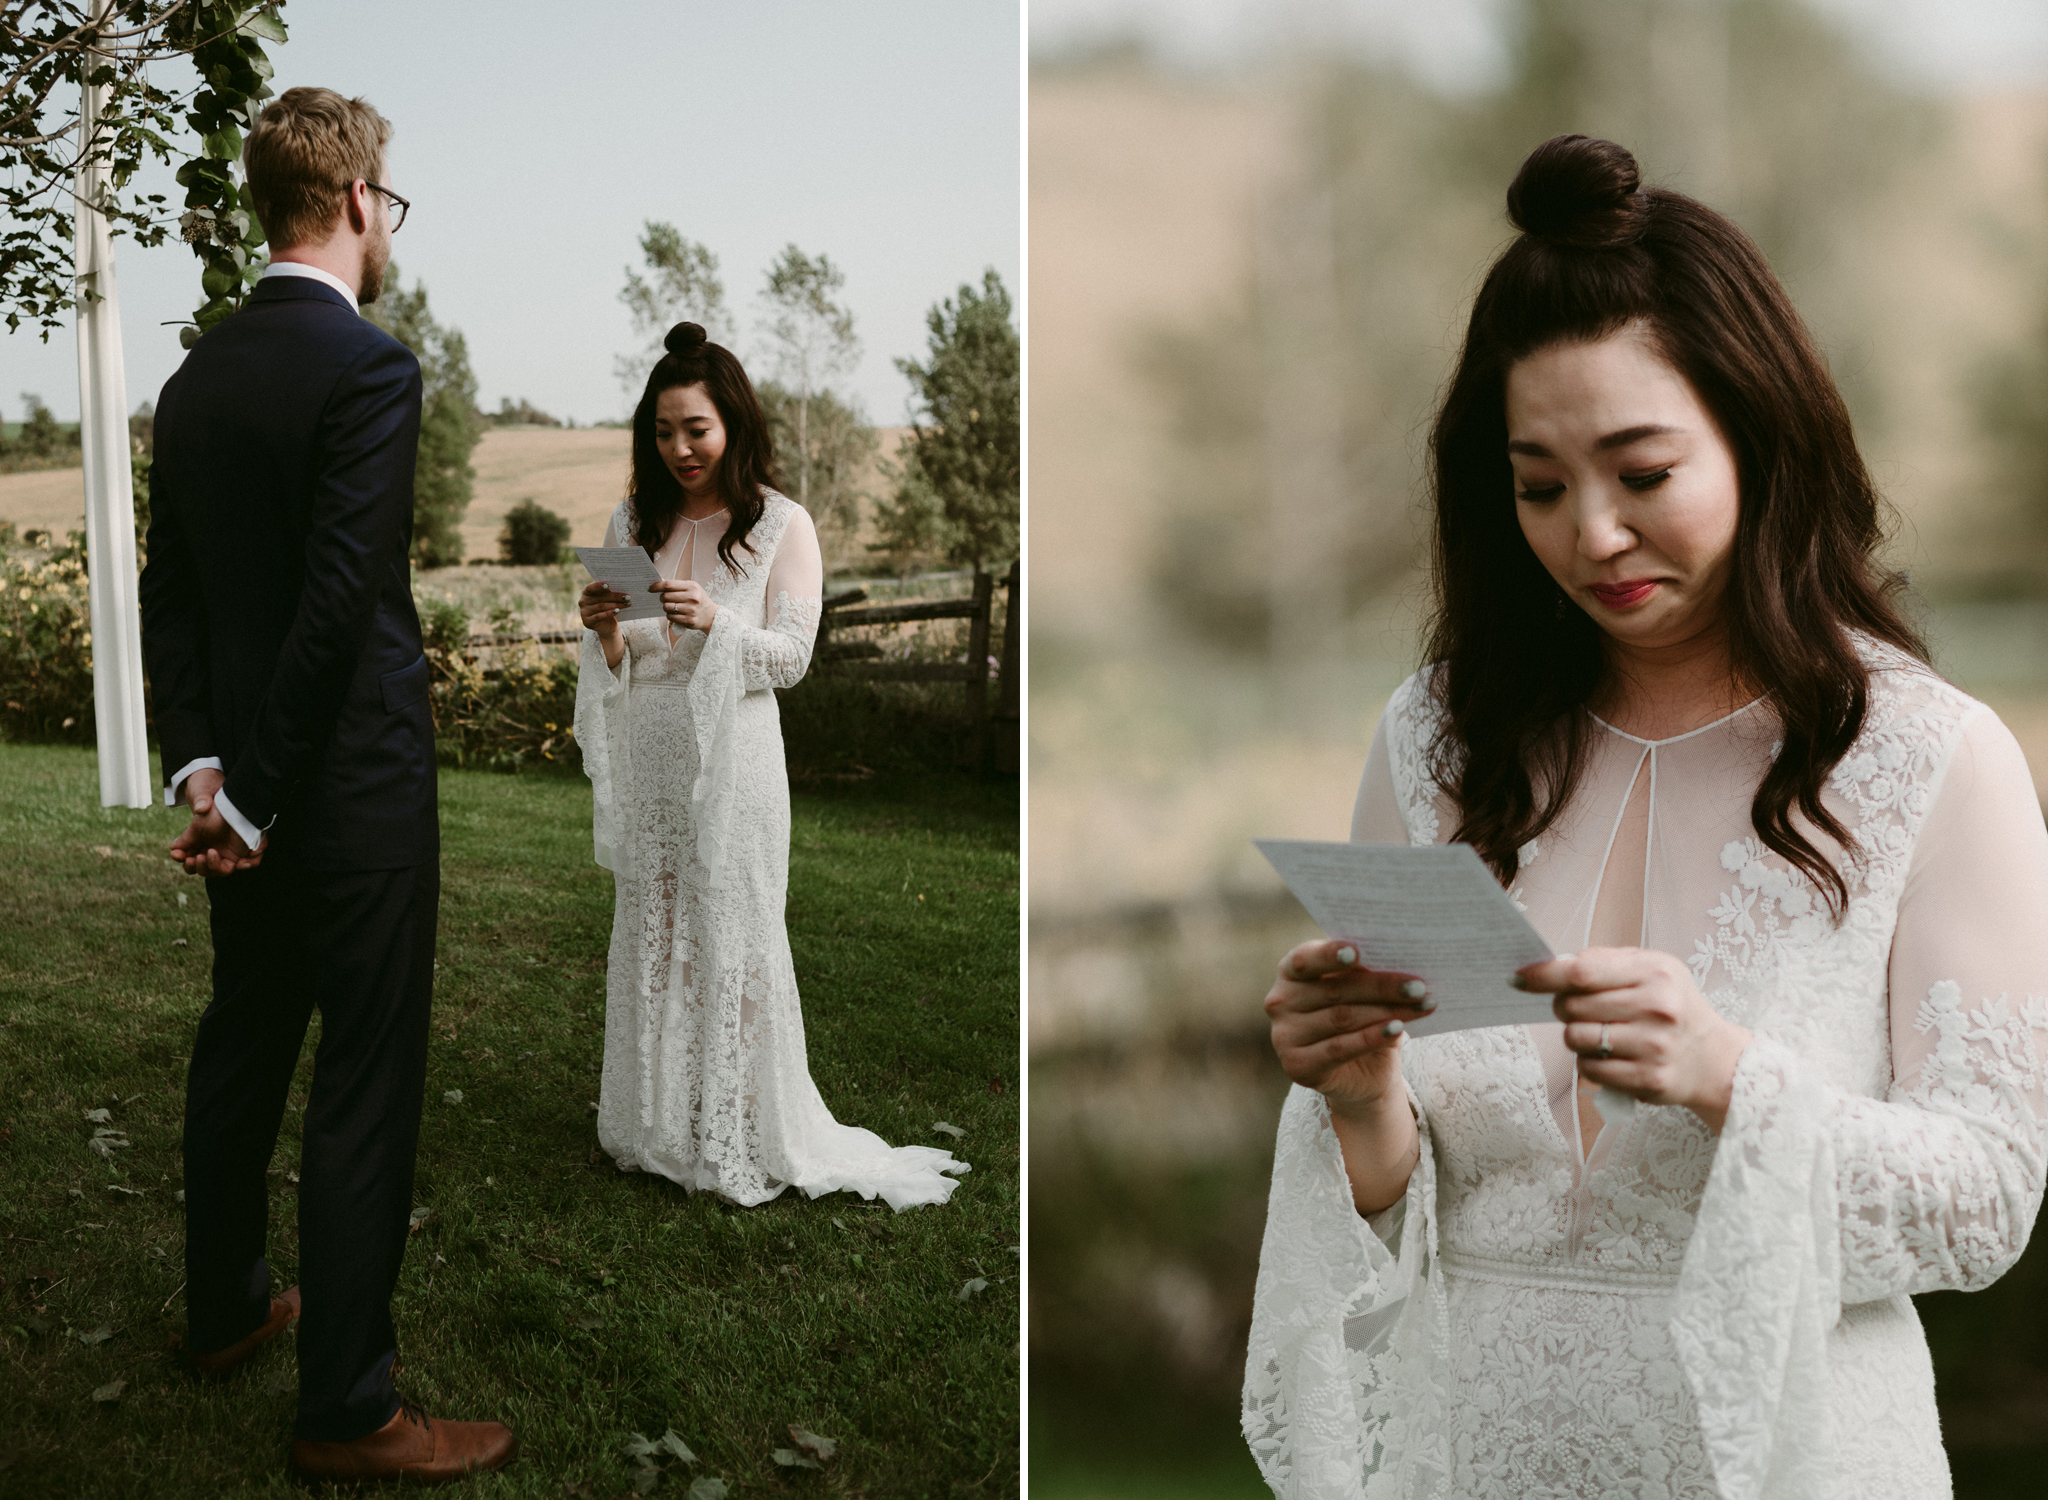 Emotional bride reading vows to groom in outdoor wedding ceremony